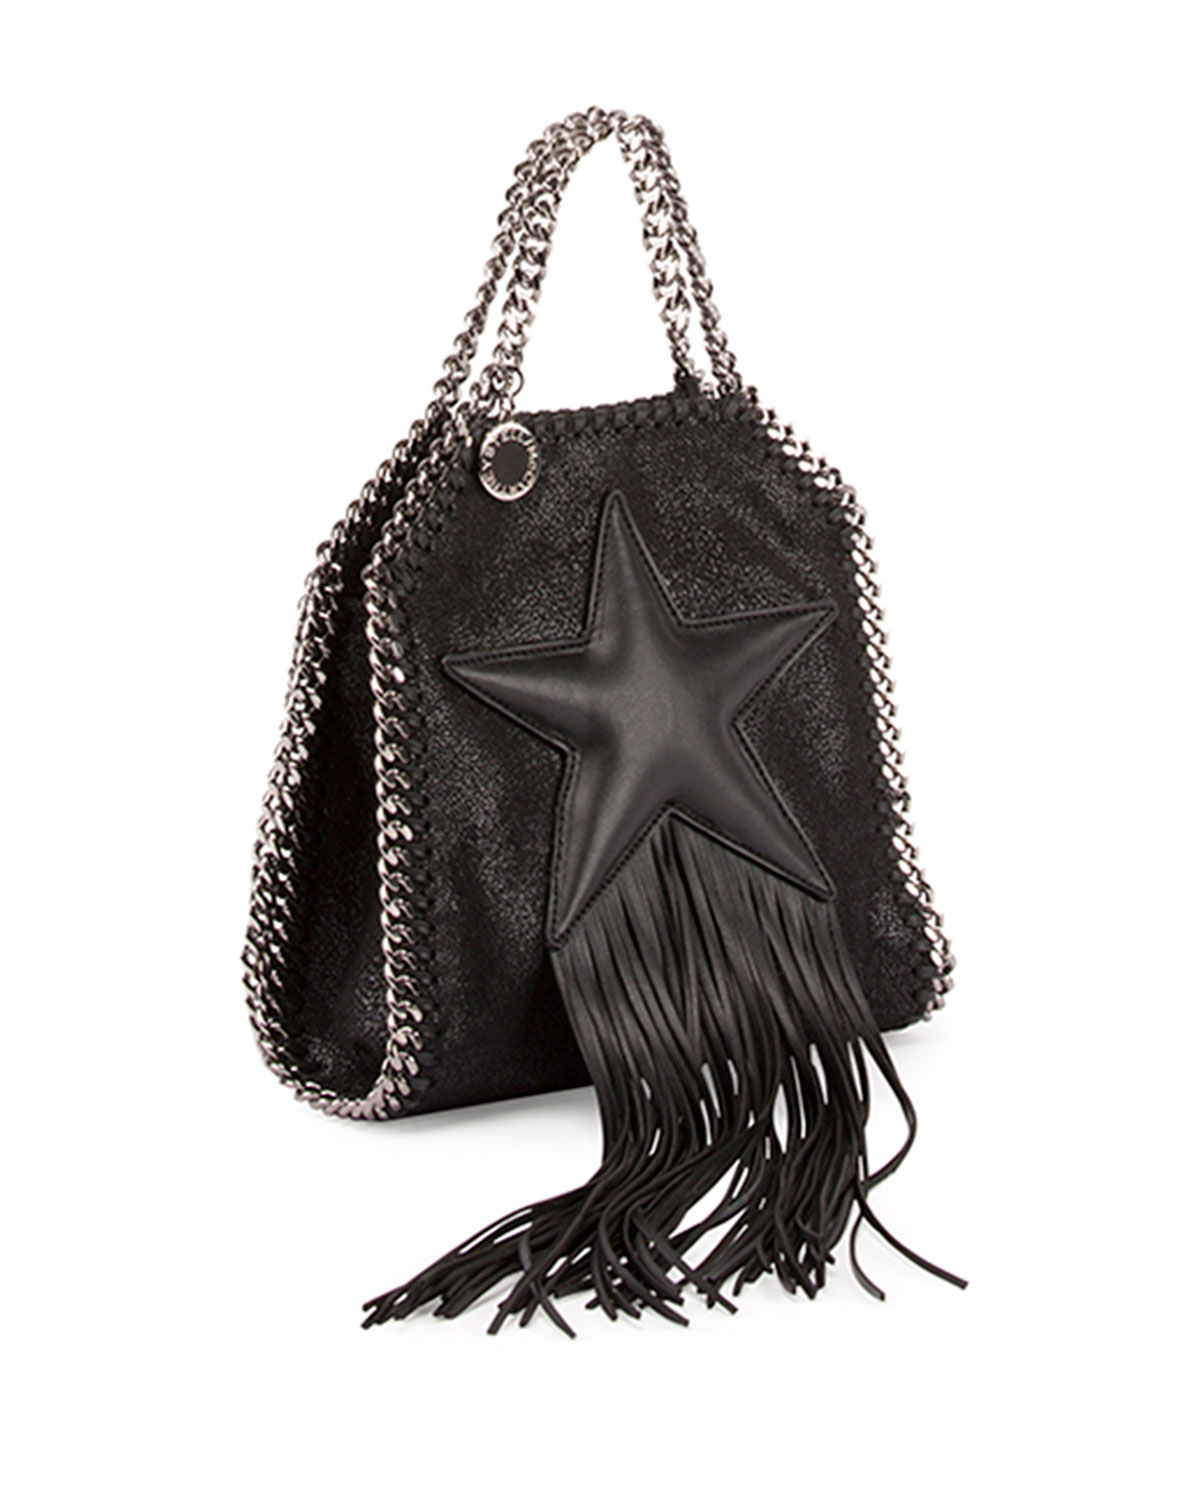 Stella McCartney Stella Star fringed bag Extremely Cheap Online Buy Cheap Best Seller Footlocker Finishline Sale Online nJnk8nMqd